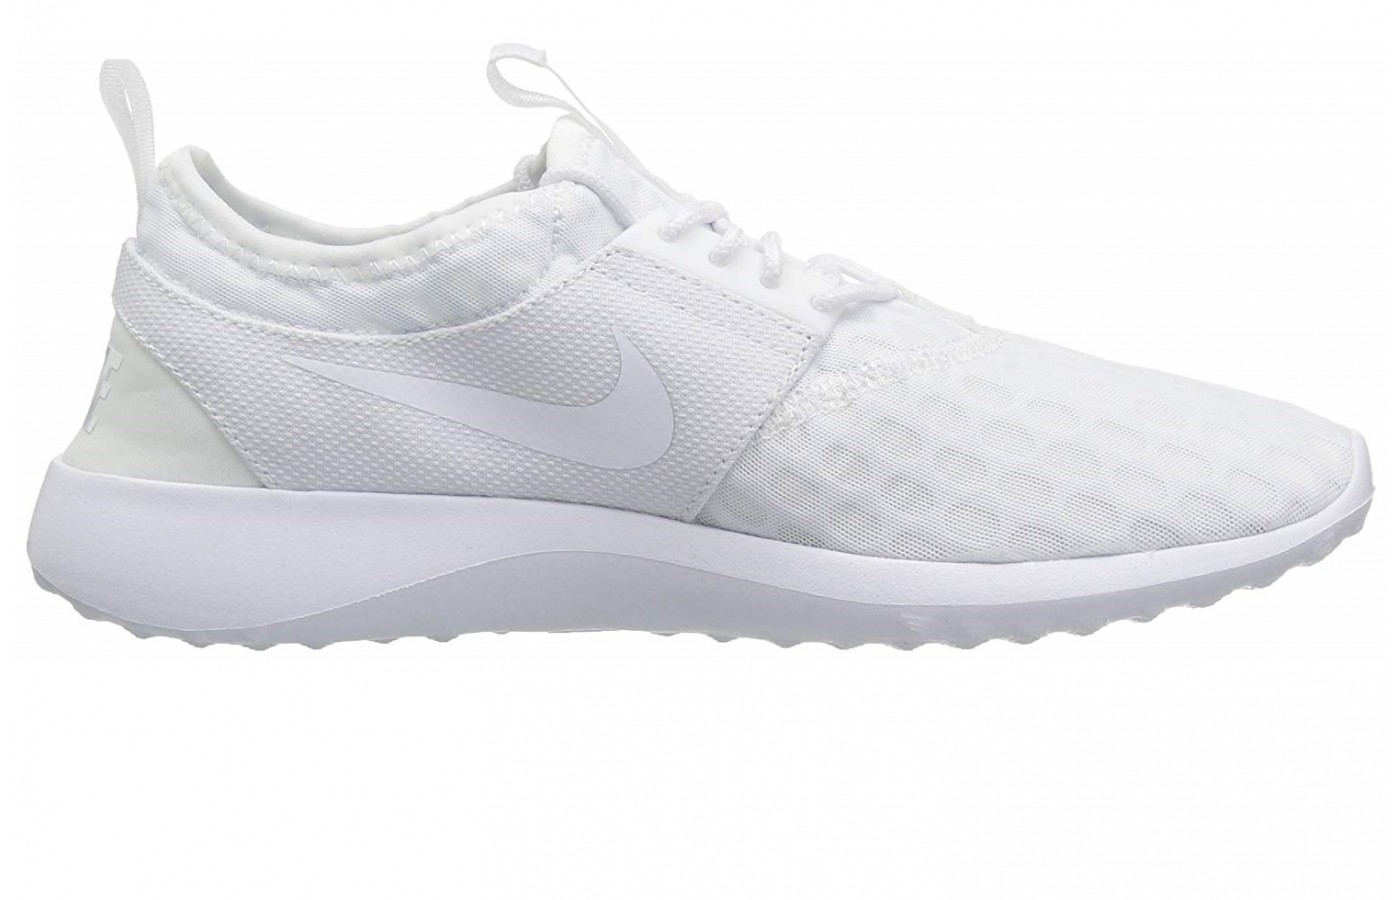 Nike Juvenate Side View